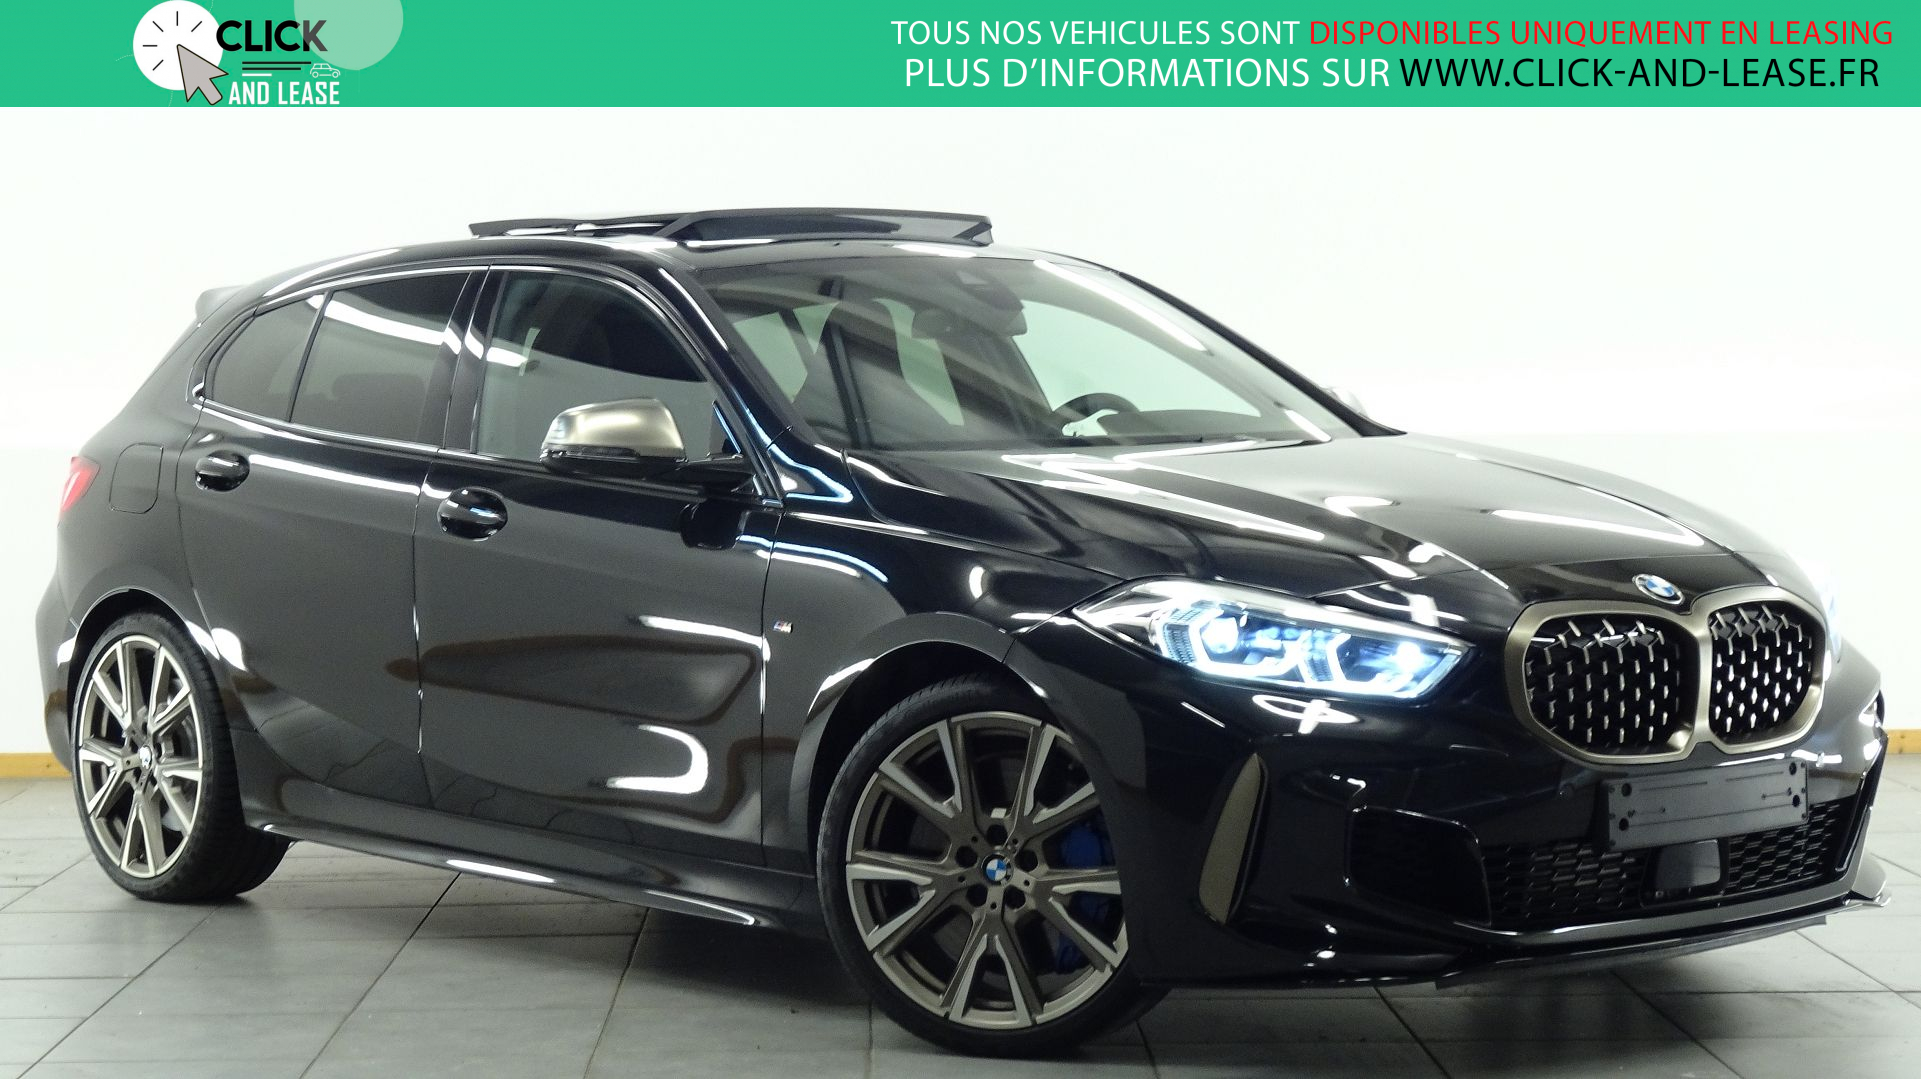 Nouvelle BMW SERIE 1 (F40) M135IA XDRIVE 306CH en leasing chez Click and Lease